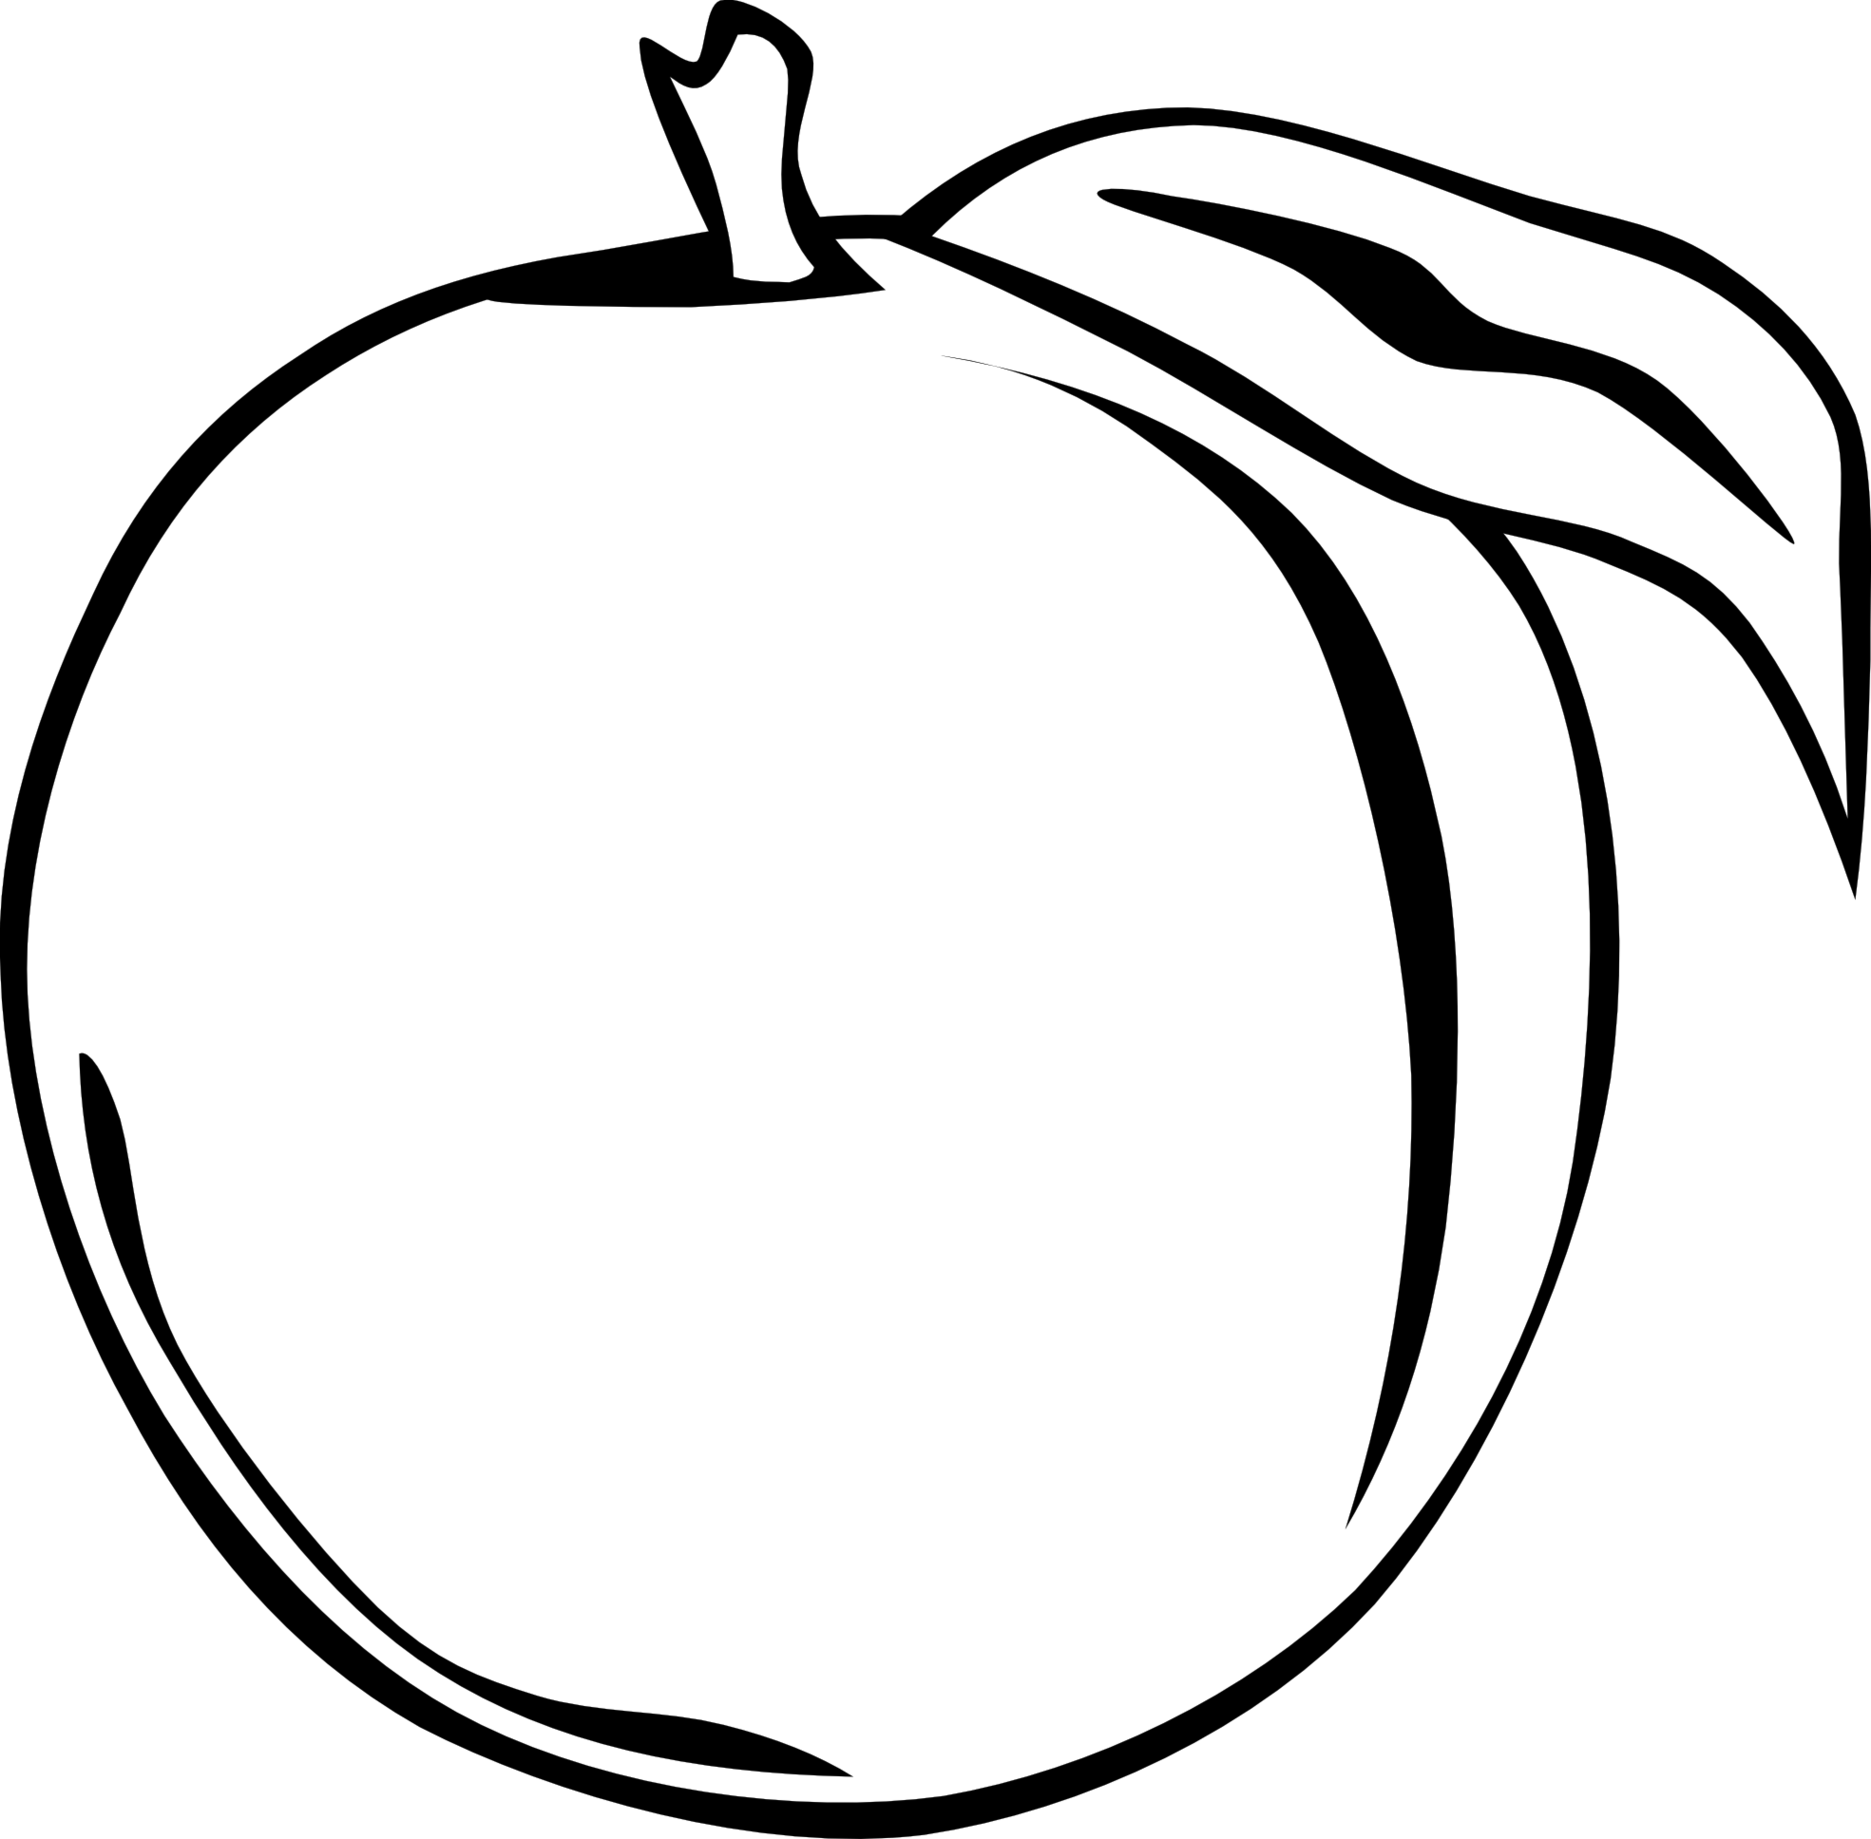 Fruits clipart black and white.  collection of apple